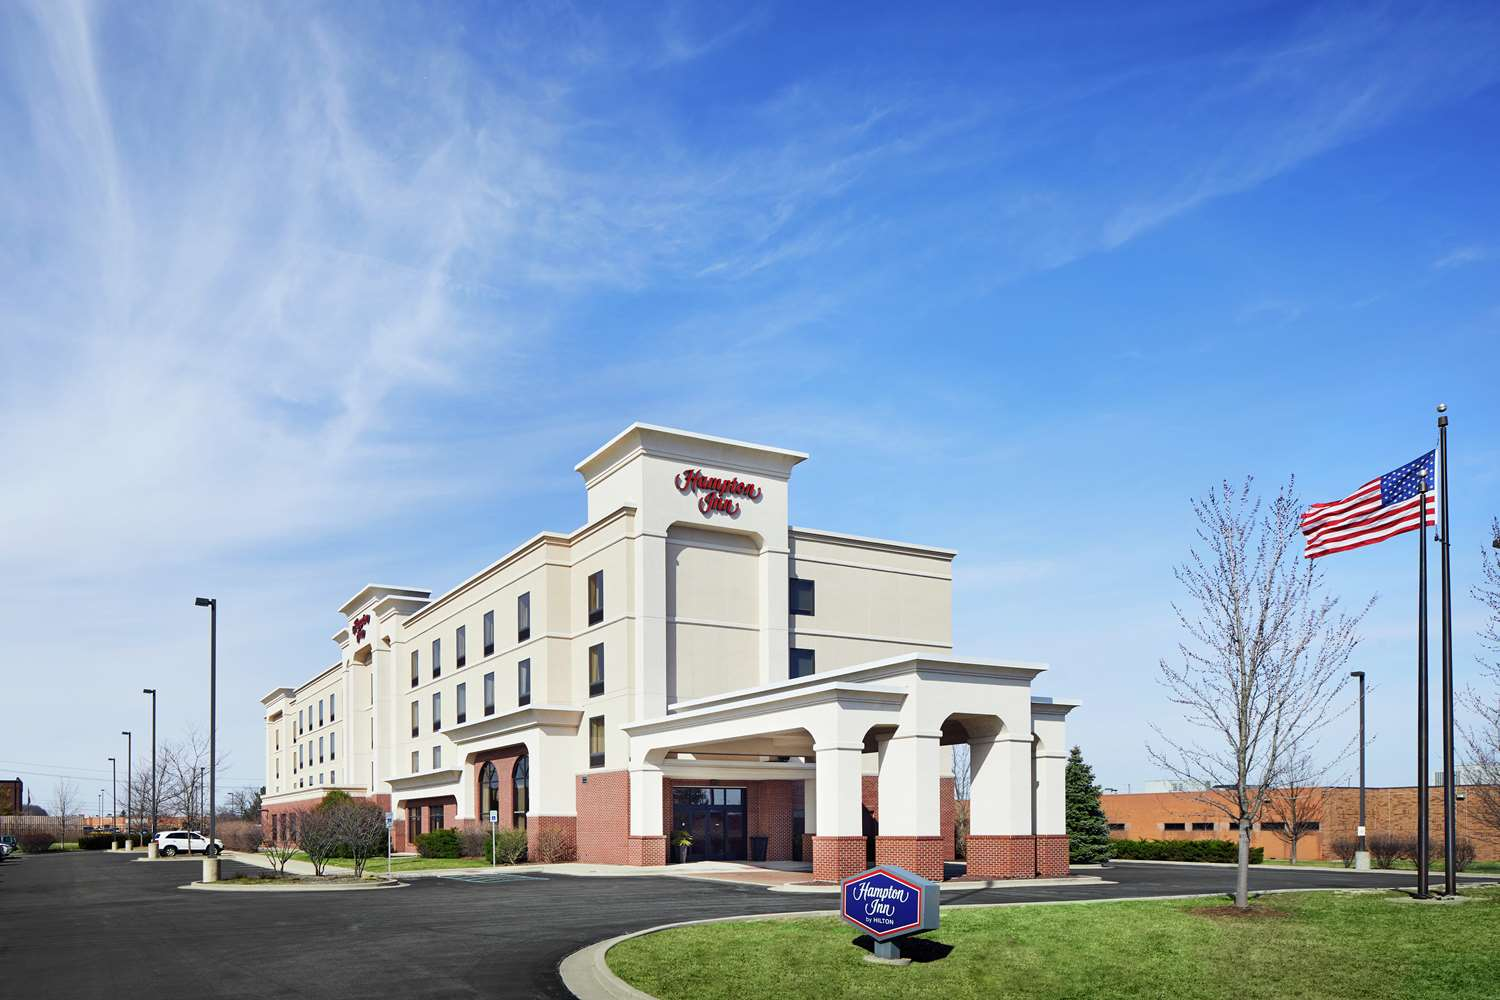 Hampton Inn Northwest Park 100 Indianapolis